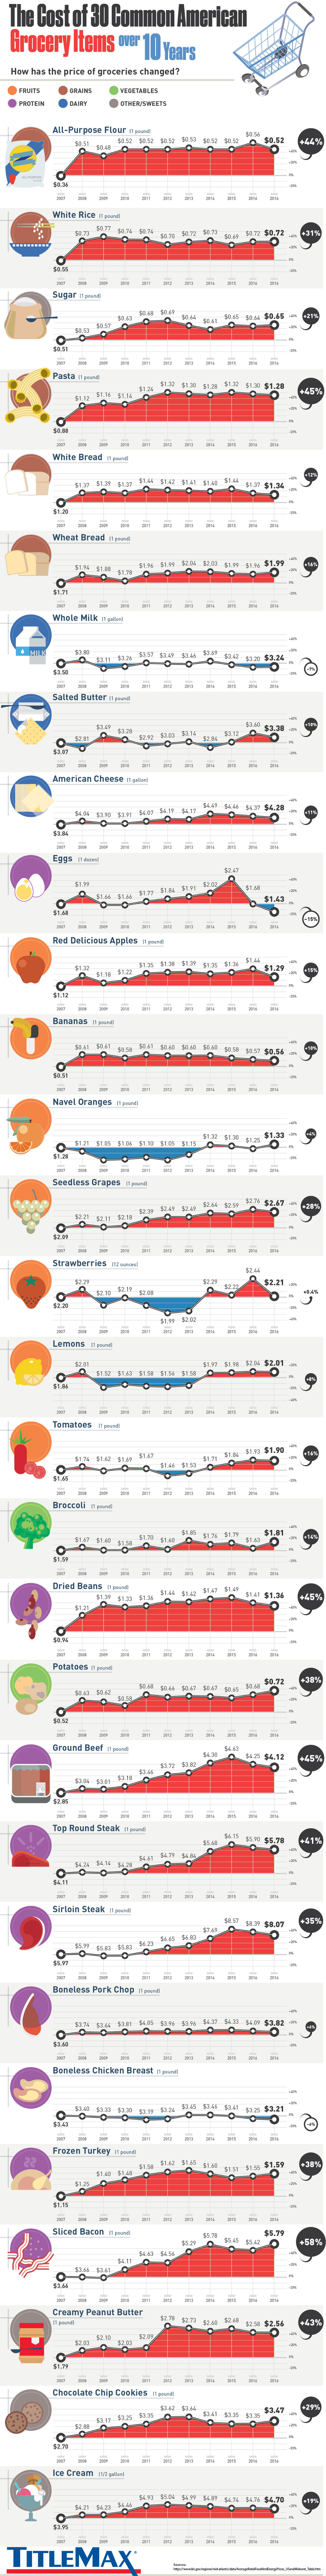 The Rise or Drop of American Grocery Prices: A 10-Year Graph - Infographic